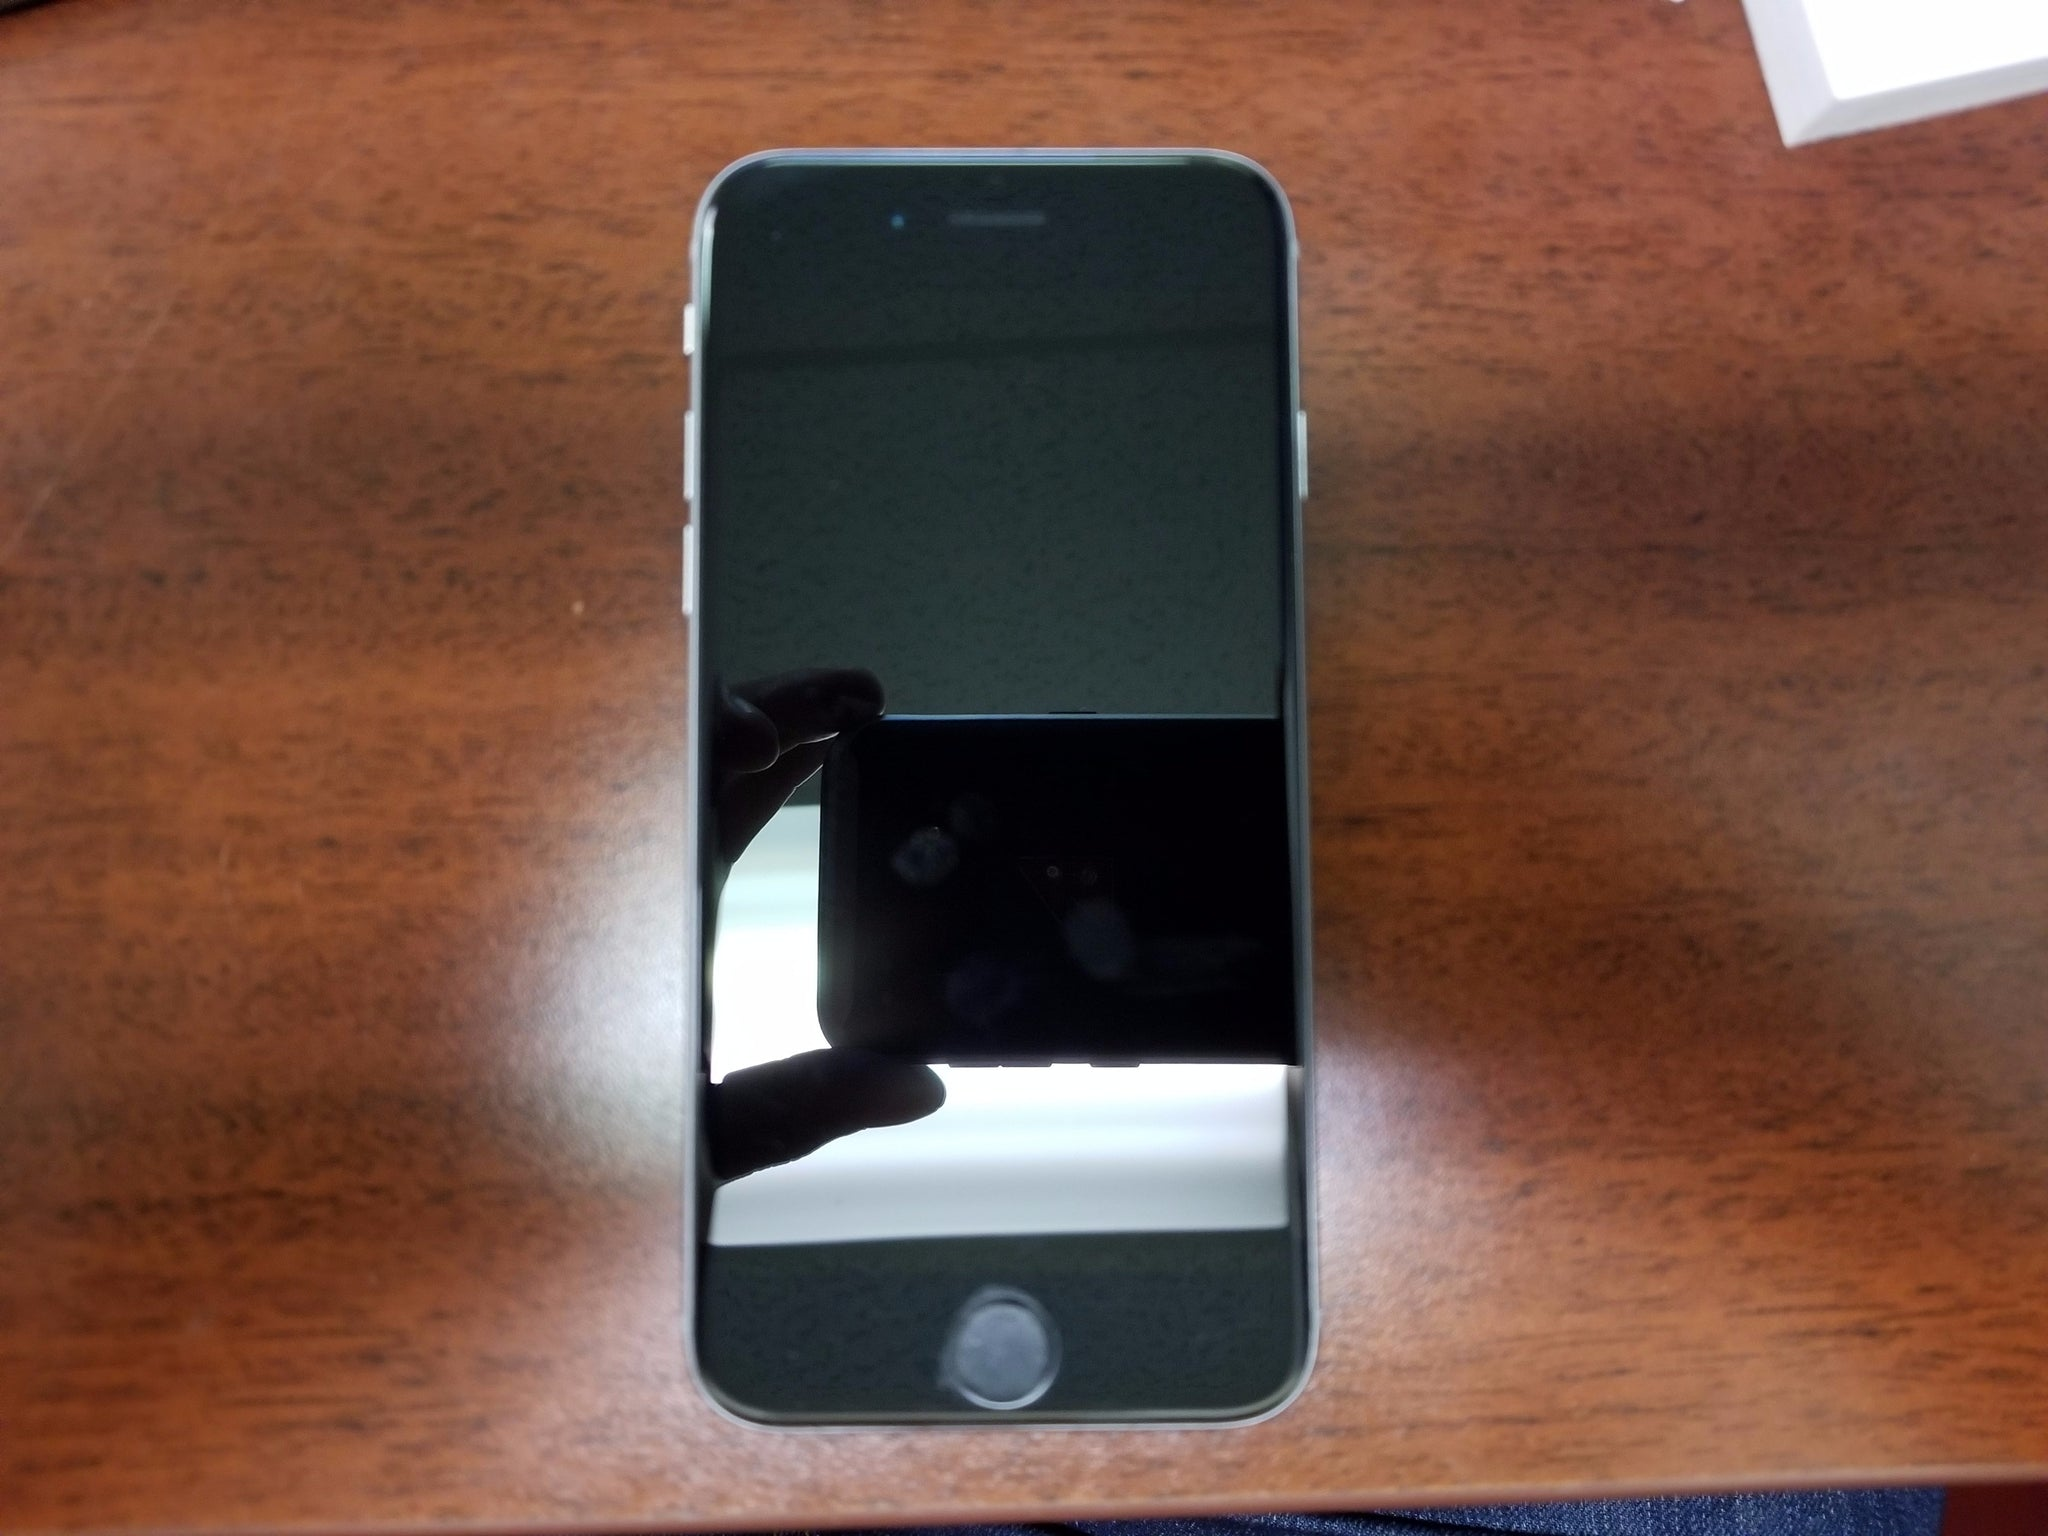 Apple Iphone 6 64gb A1549 Space Grey Unlocked Good Condition Gorecell